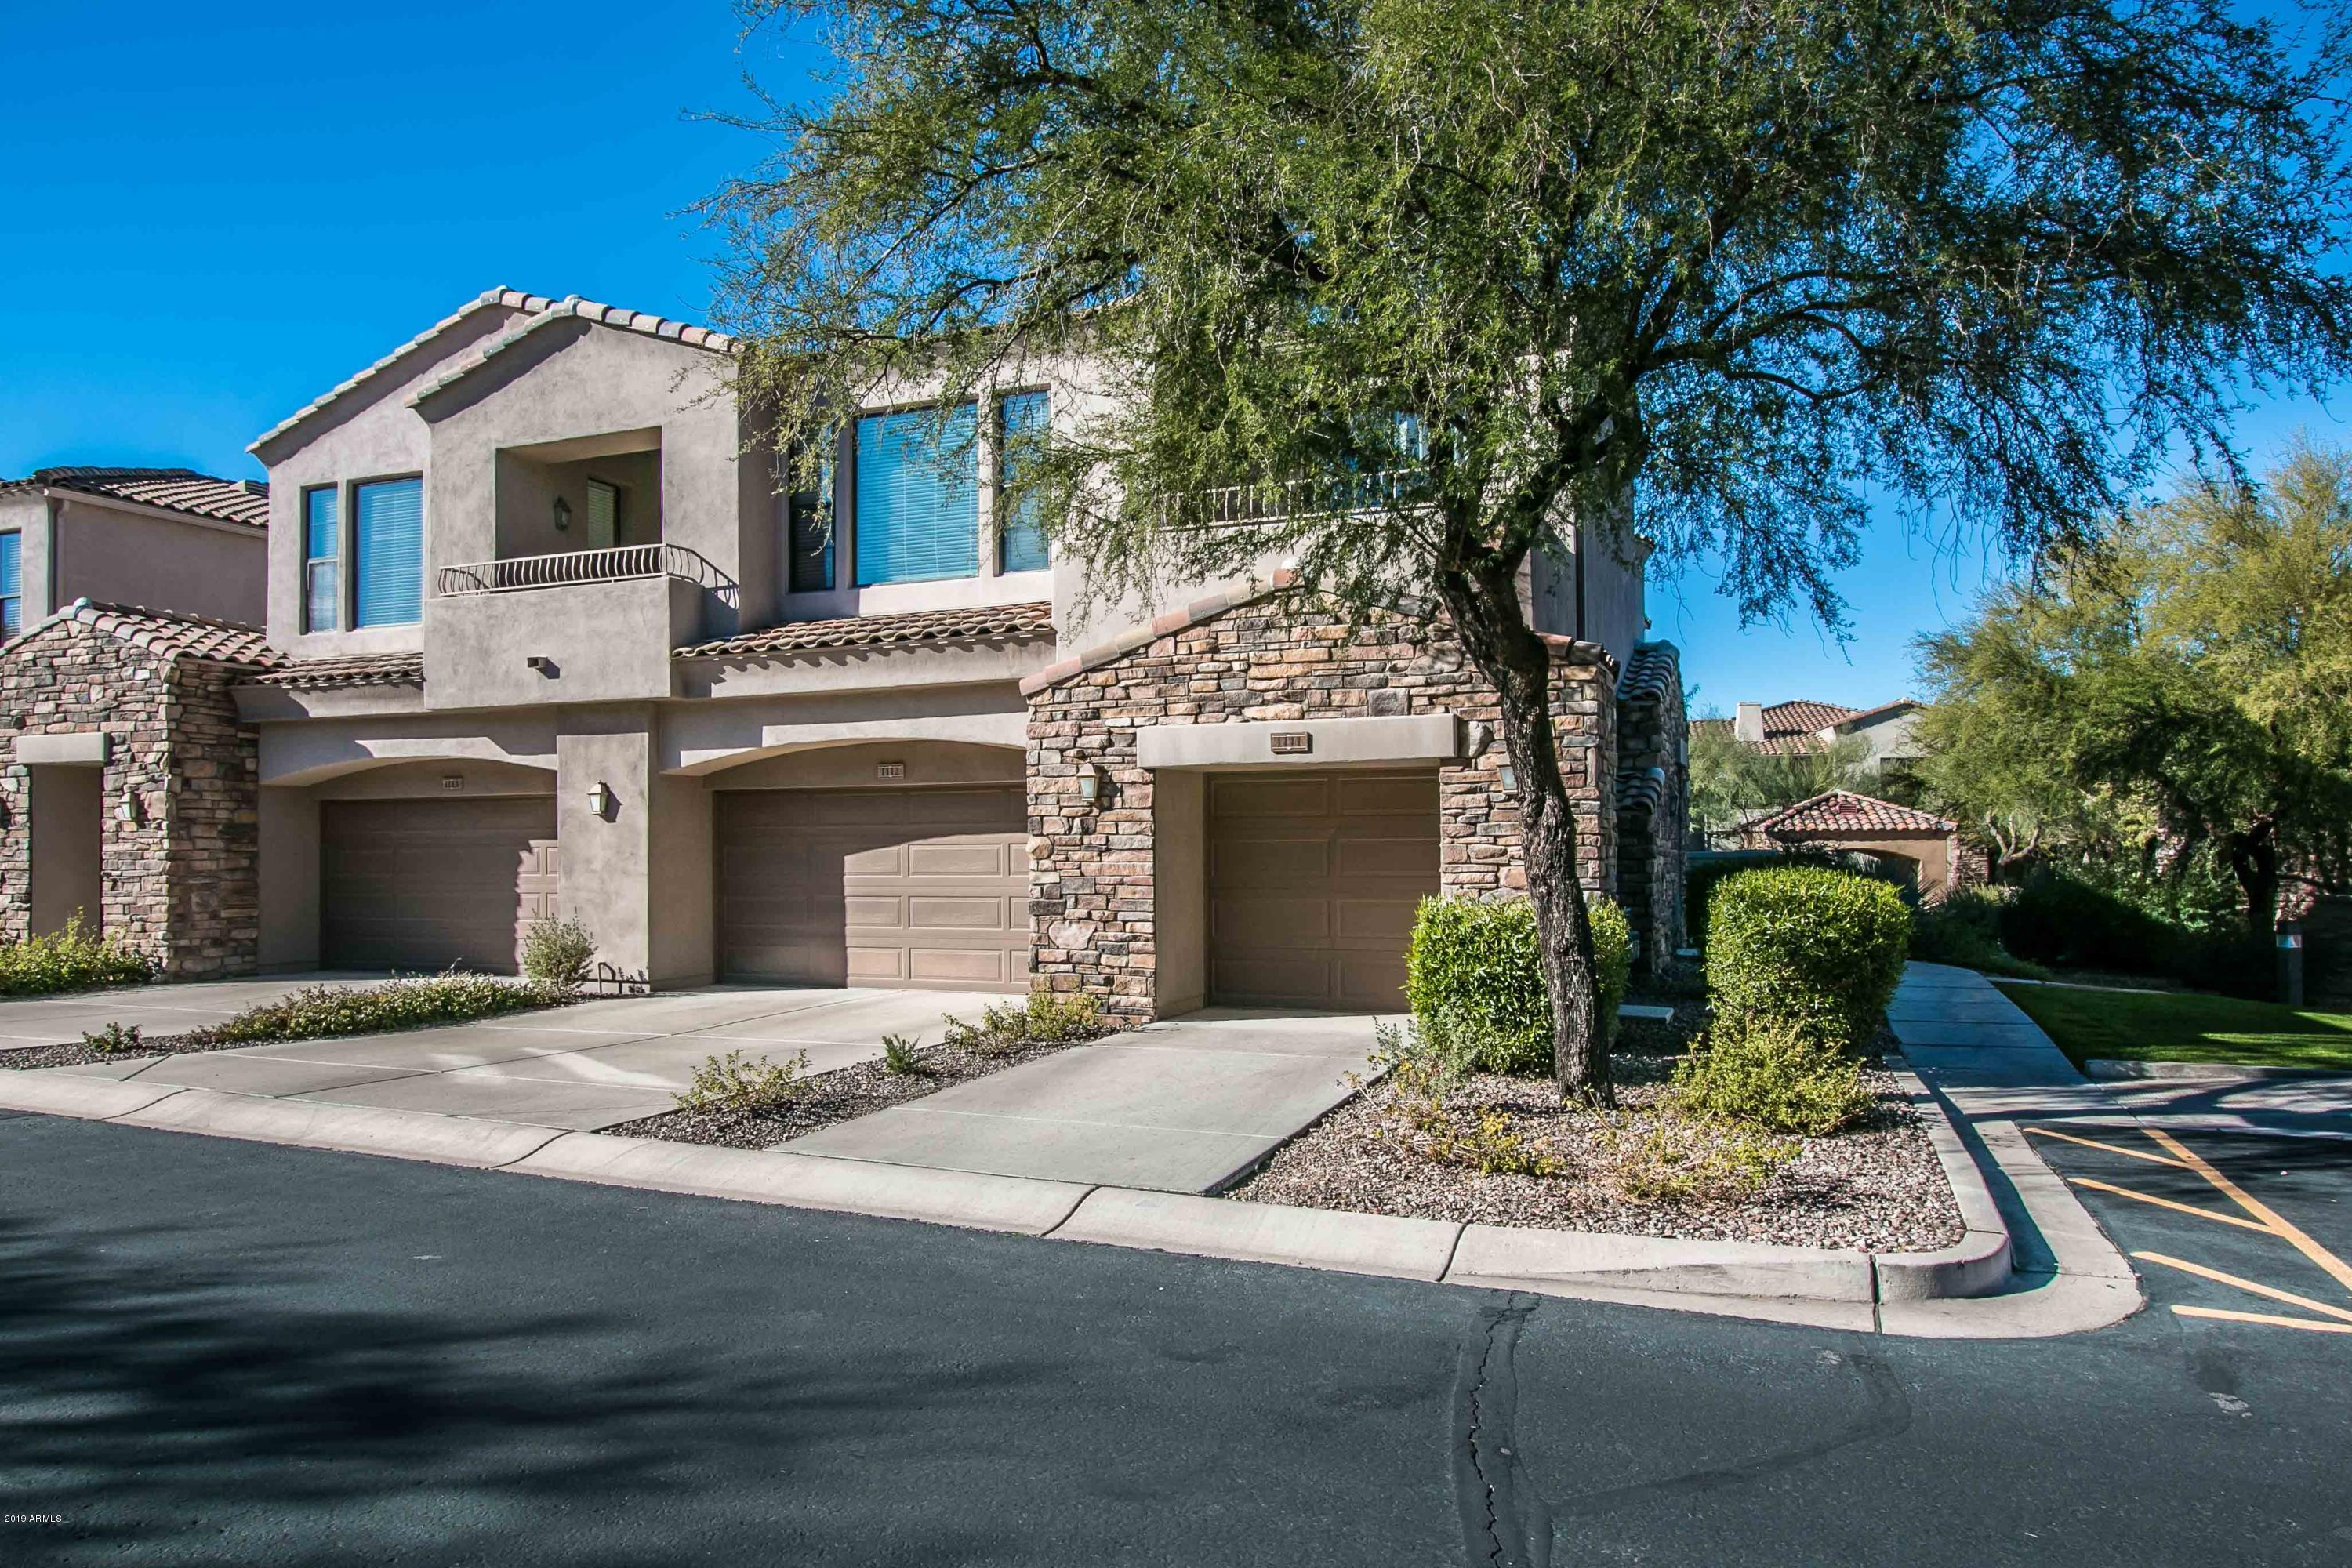 Photo of 7445 E EAGLE CREST Drive #1111, Mesa, AZ 85207